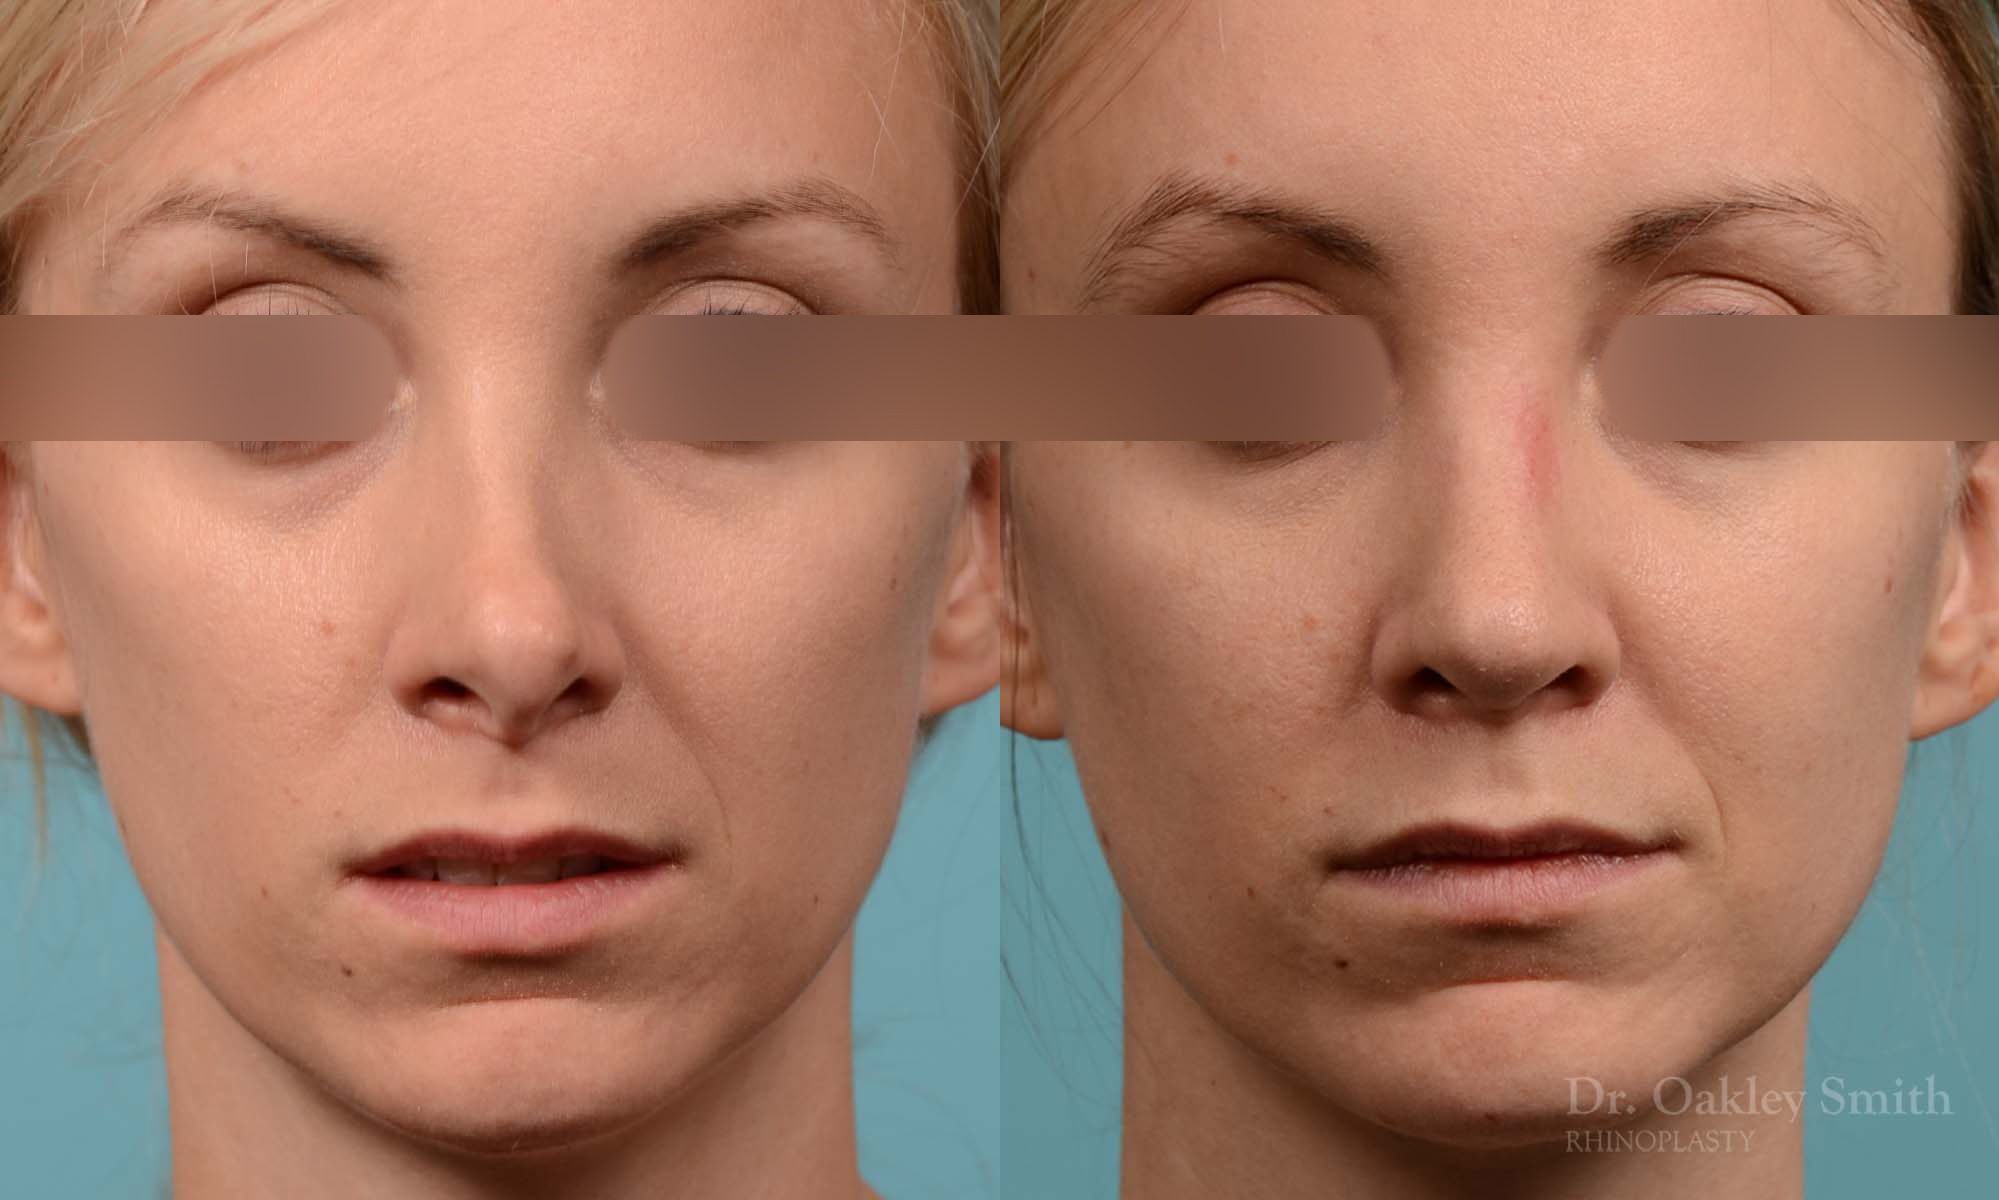 Rhinoplasty - Rhinoplasty Before and After Case 280